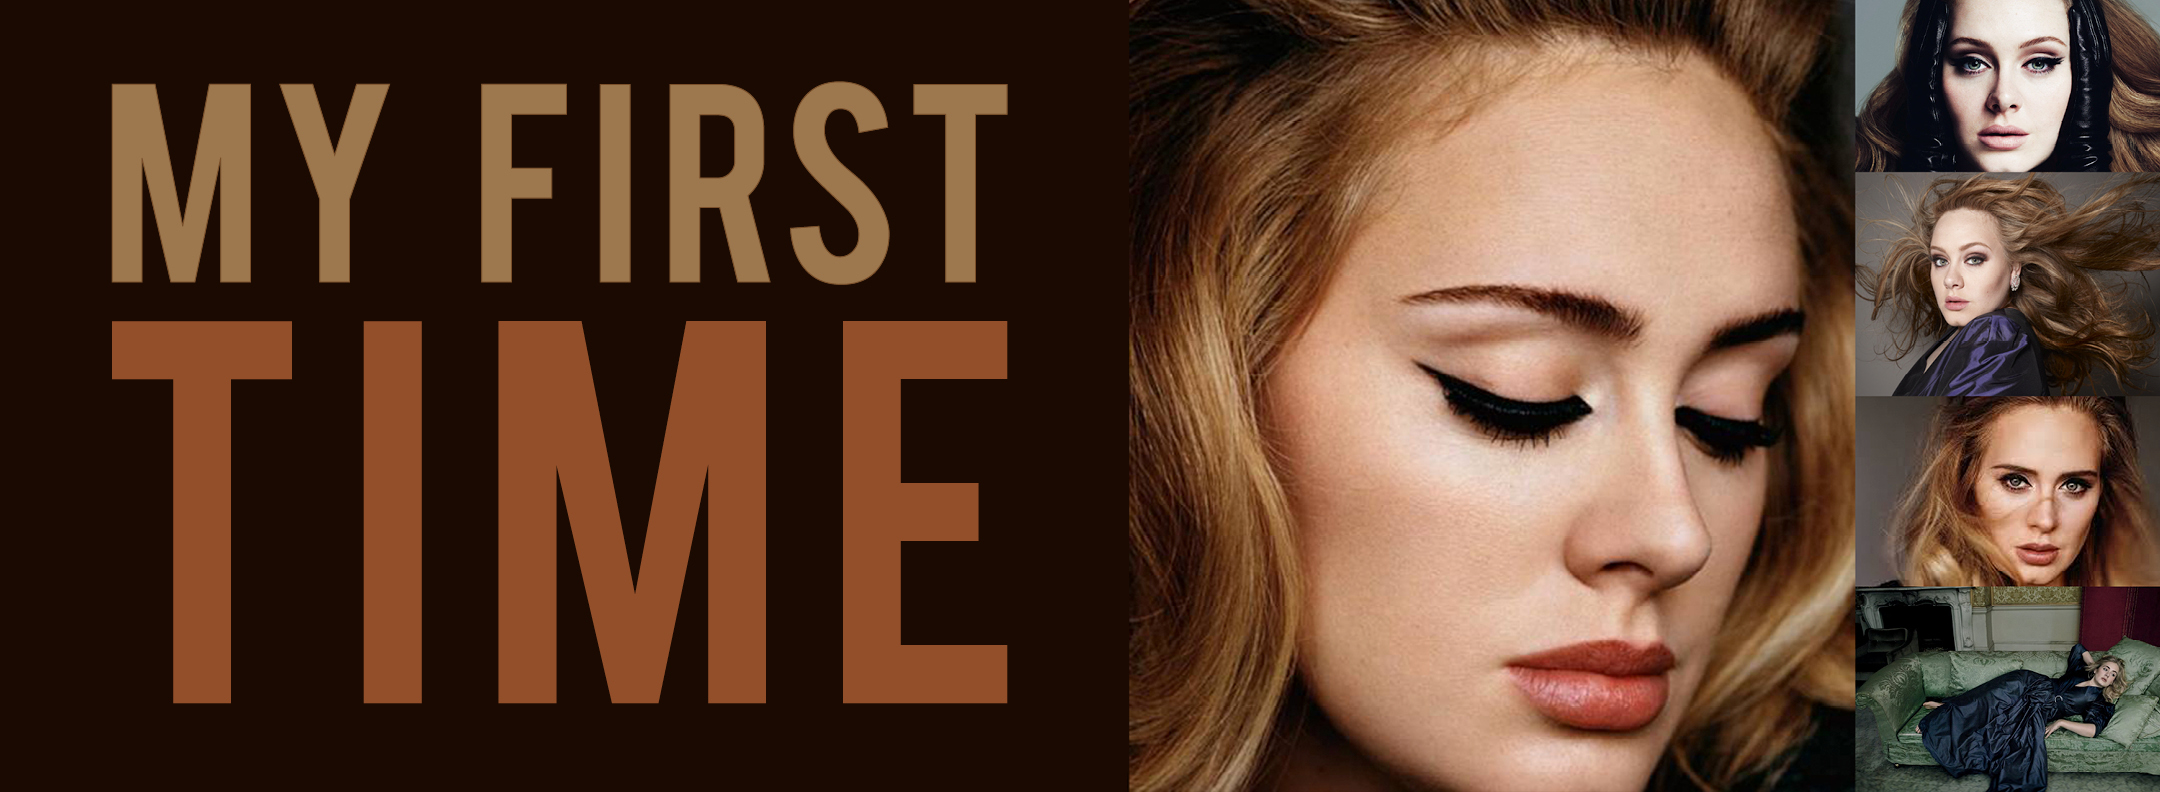 Adele Banner My First Time